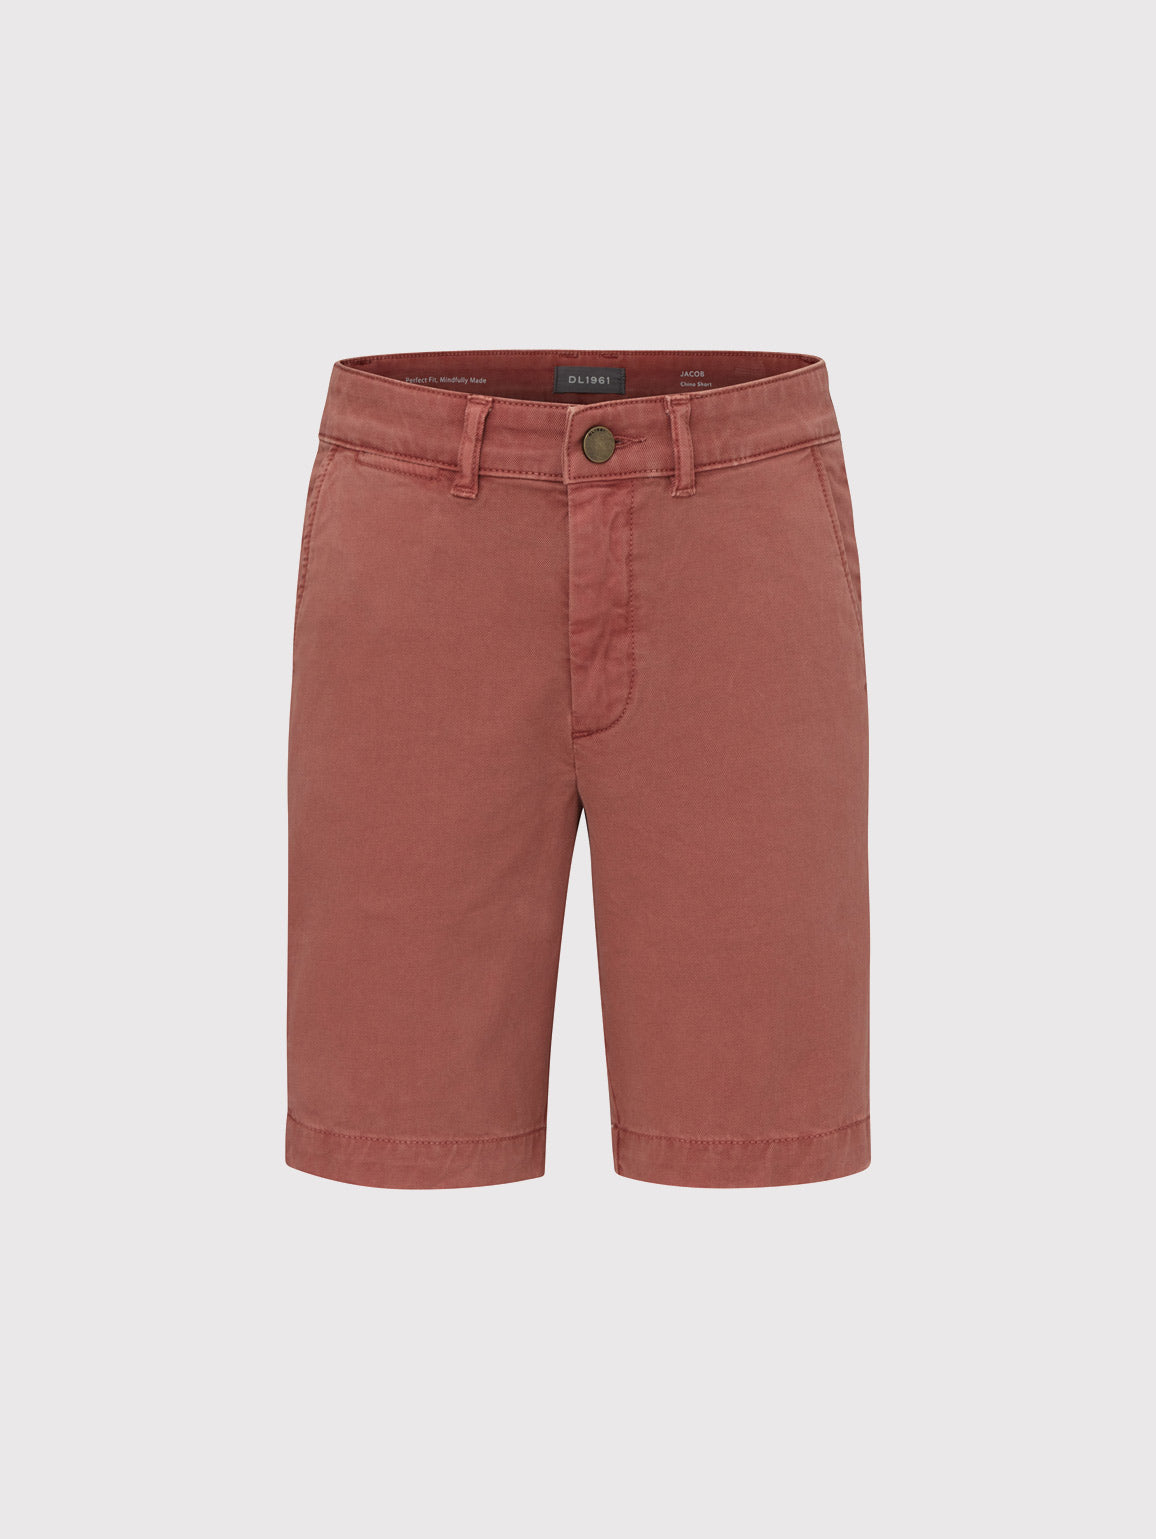 Jacob Chino Short | Dawn Patrol